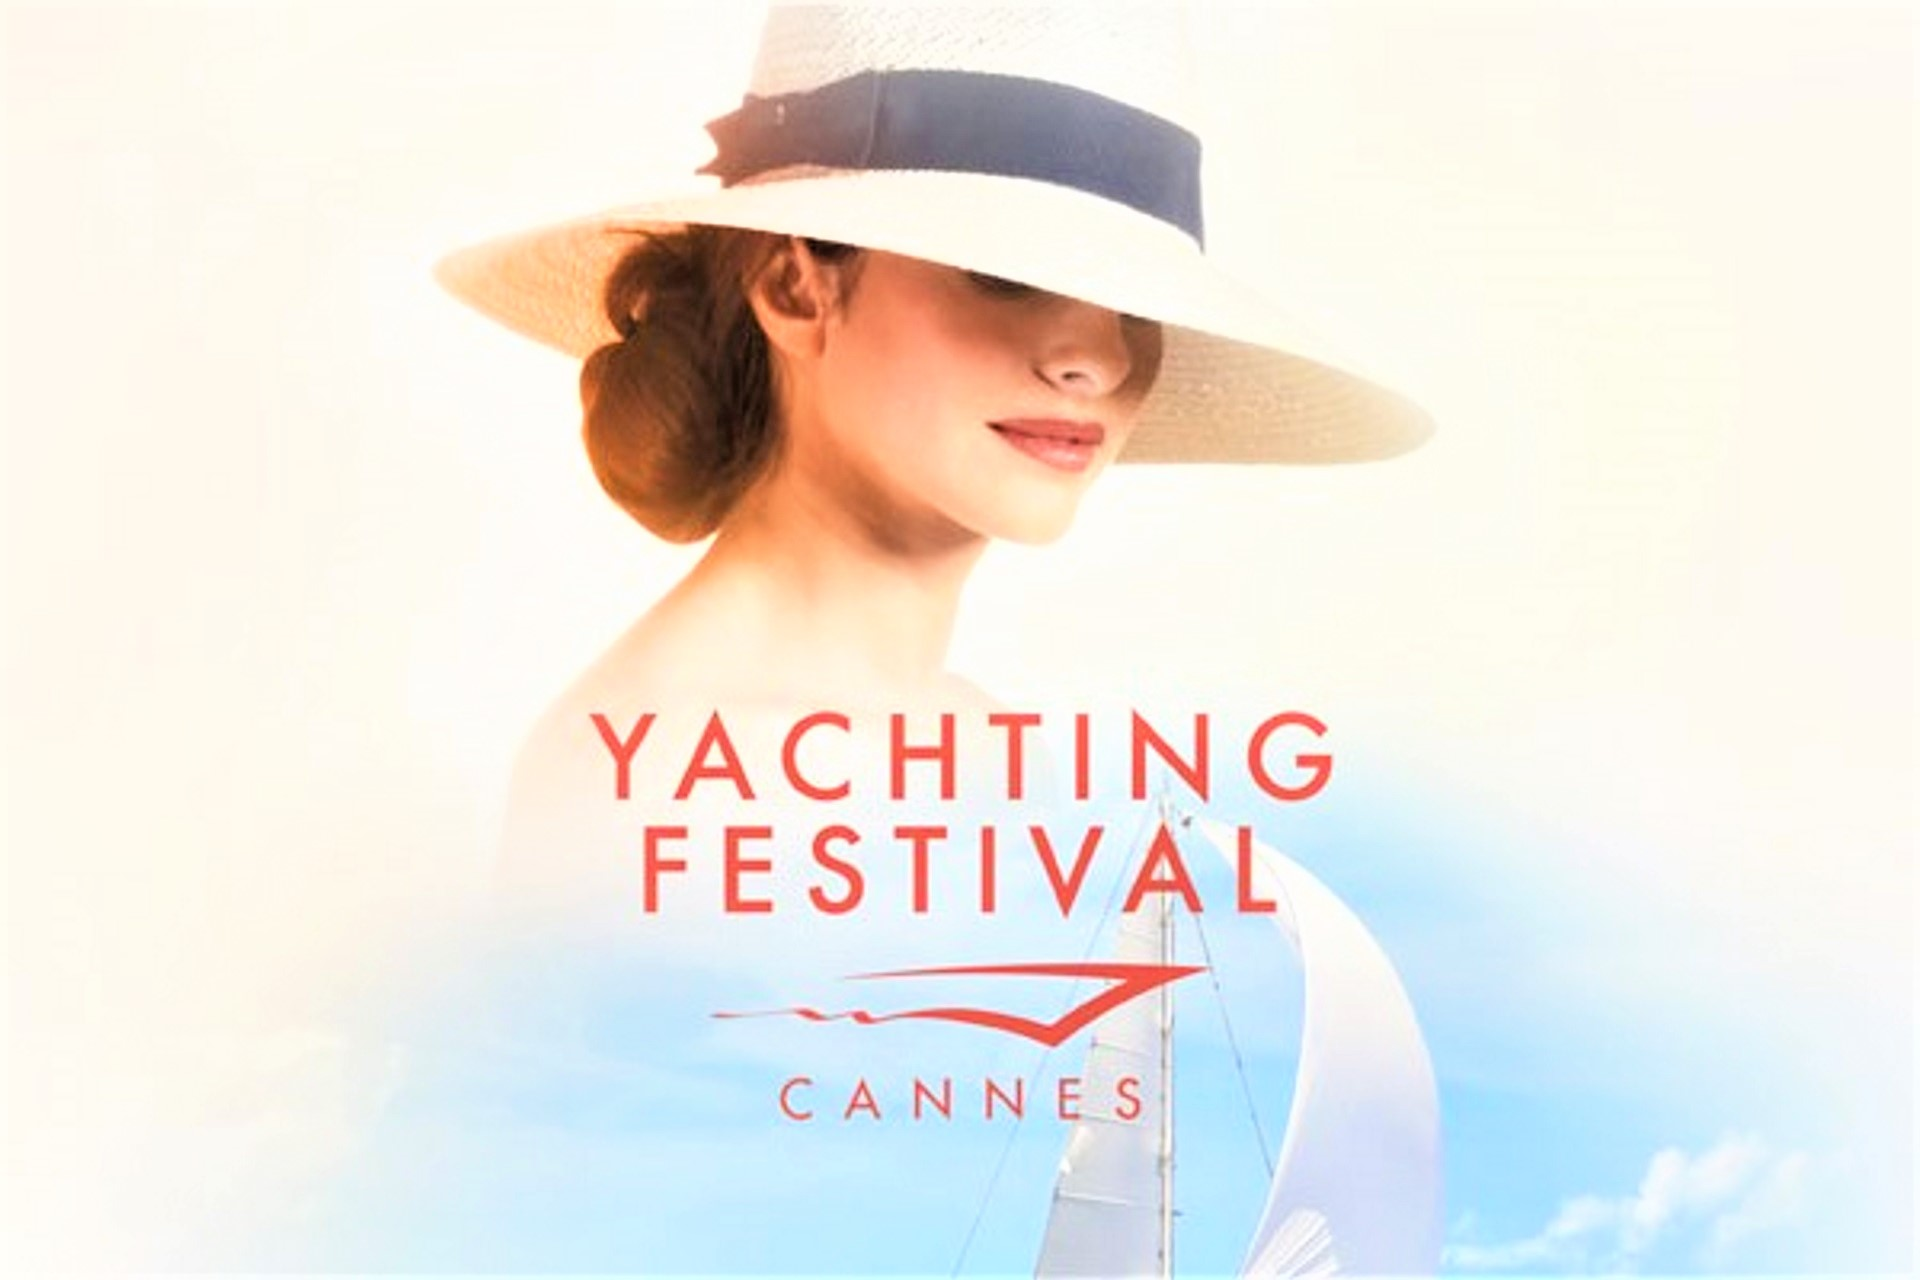 yachting-festival-cannes event